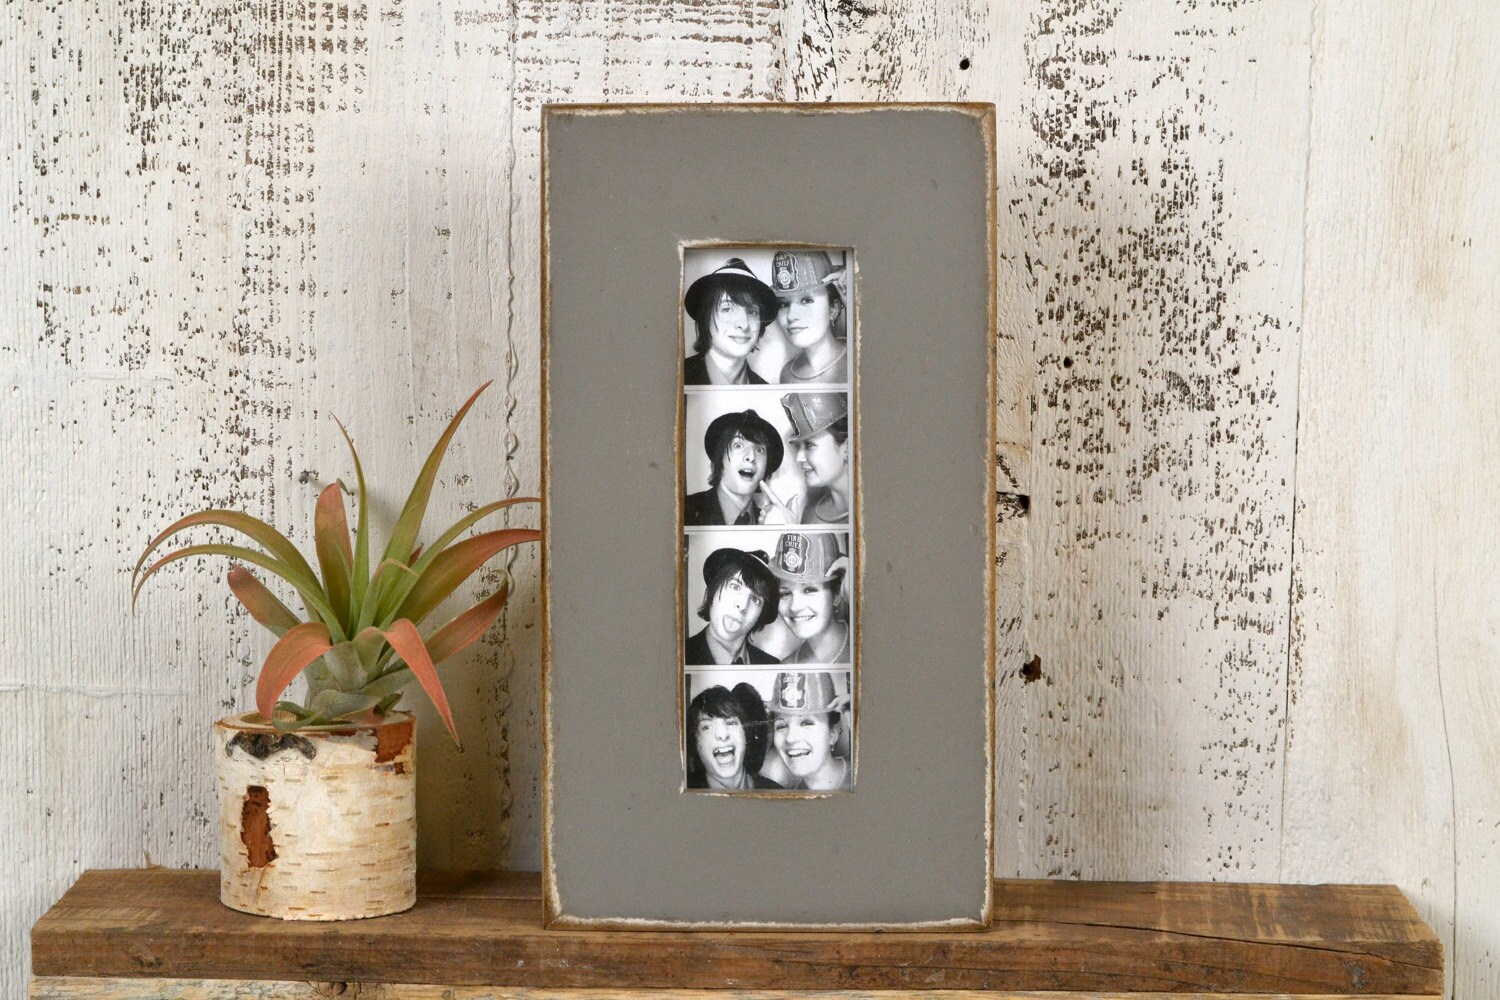 Photo Booth Frame 2 X 6 For Picture Strip In 15 Standard Style In